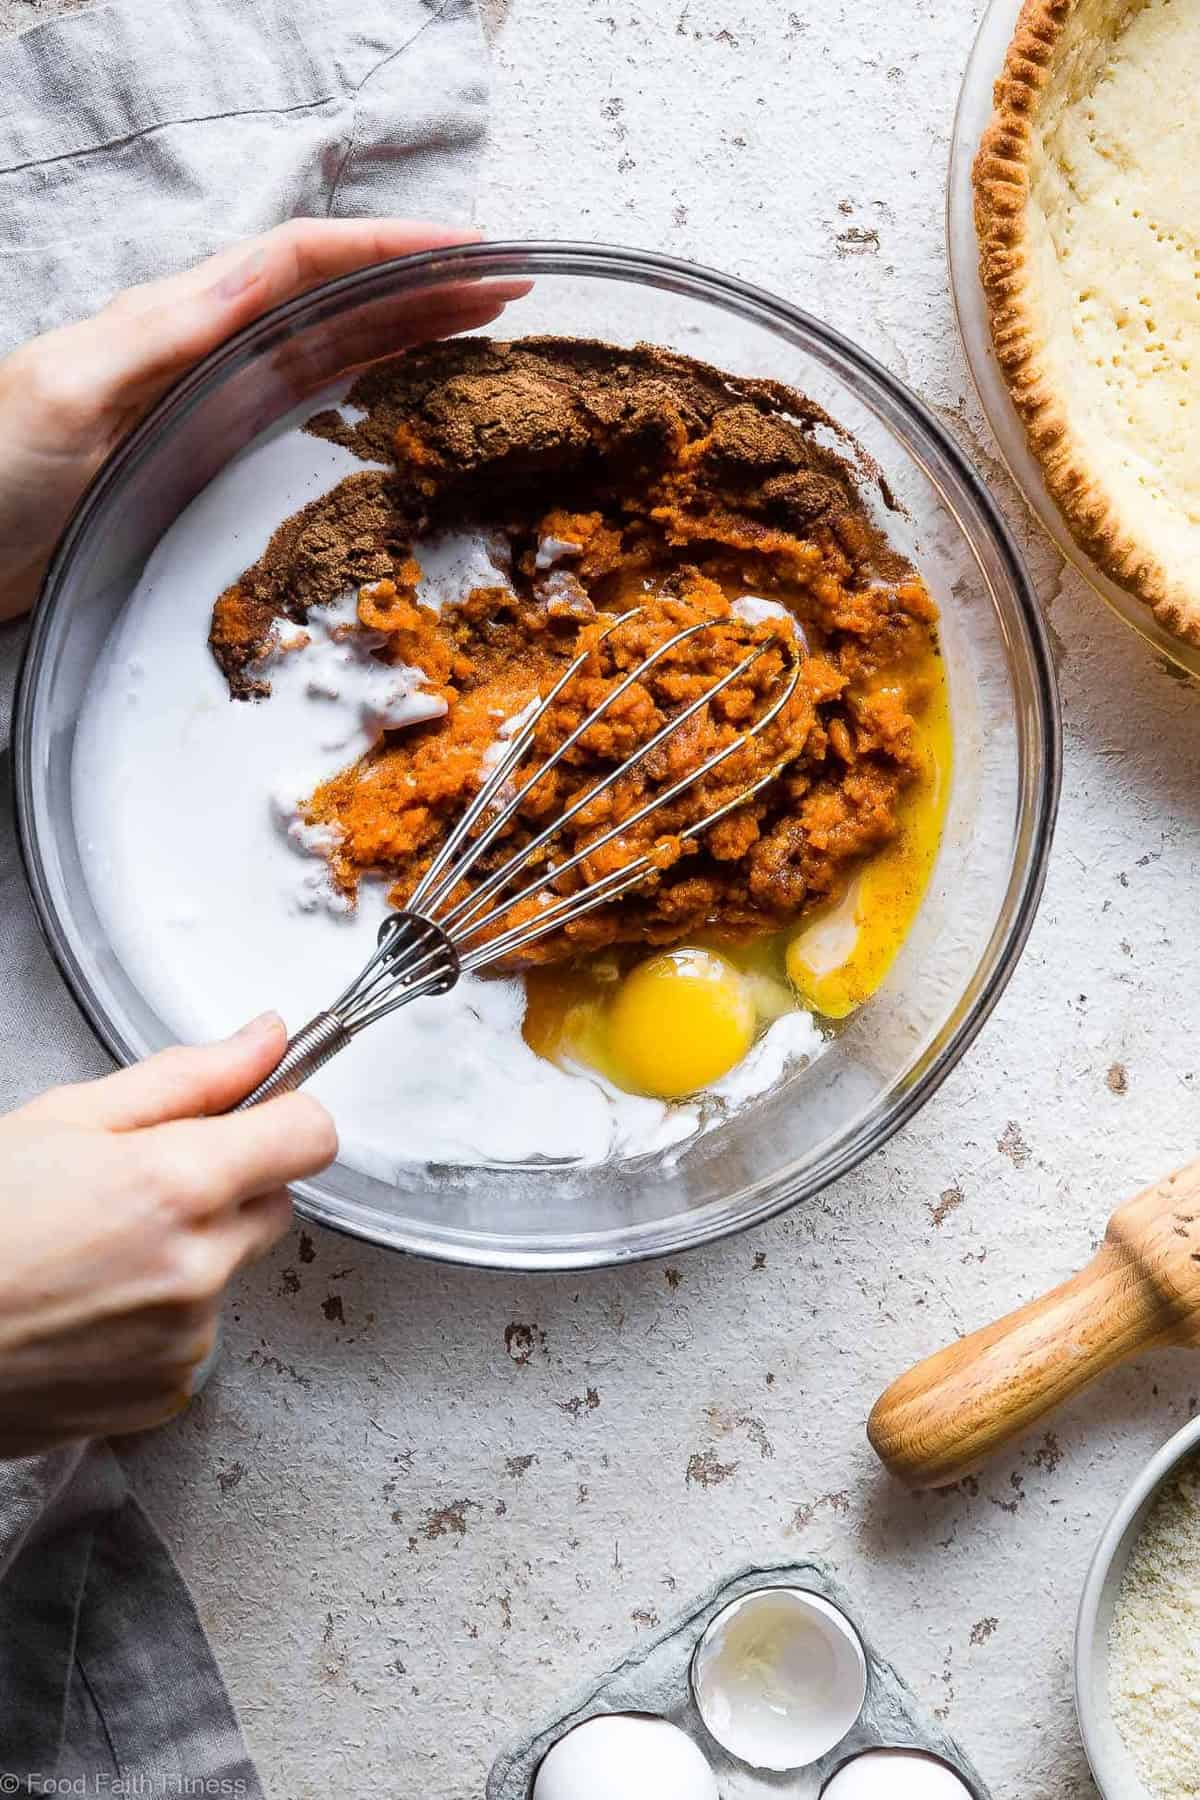 The BEST Paleo Low Carb Sugar Free Pumpkin Pie -Thispaleo friendly, low sugar pumpkin pie recipe is SO delicious, you will never know it's dairy and gluten free and only 200 calories a slice! Everyone will want this recipe! | #Foodfaithfitness